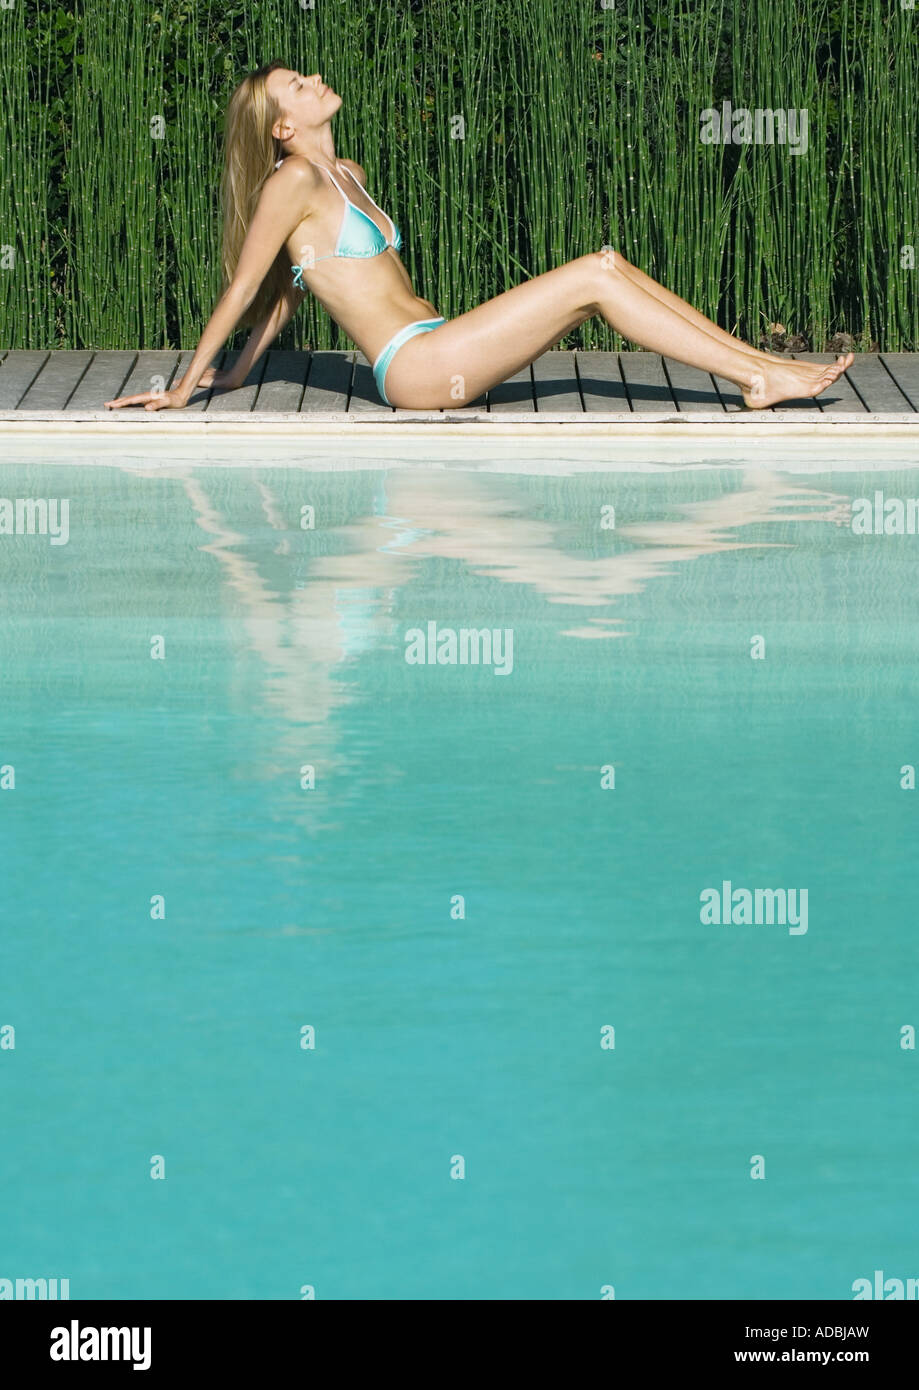 Woman sitting by edge of pool, leaning back with knees up, eyes closed, full length - Stock Image